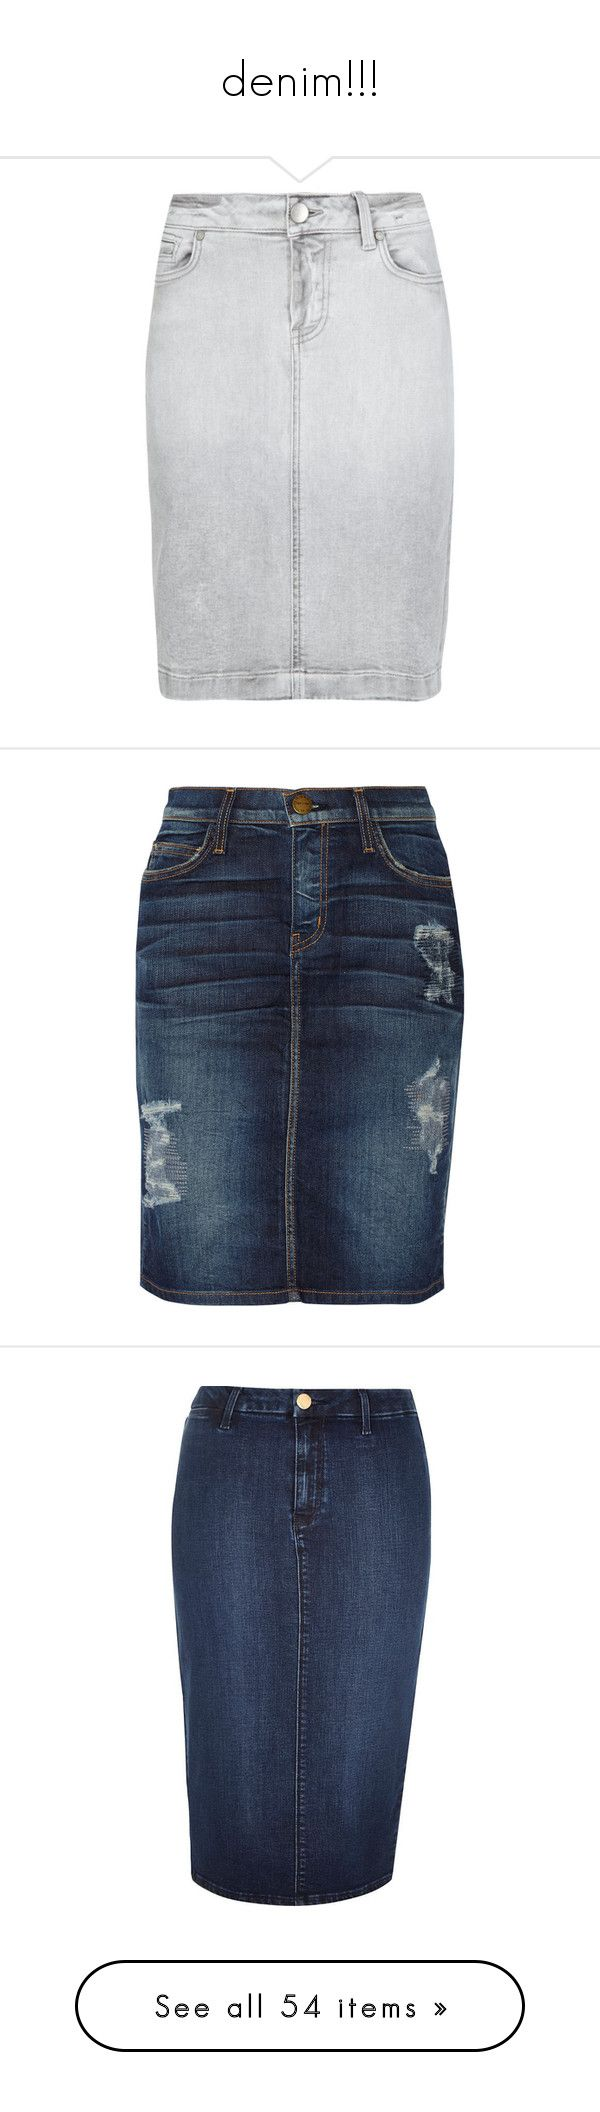 """""""denim!!!"""" by missbeth1897 ❤ liked on Polyvore featuring skirts, knee length pencil skirt, knee length denim pencil skirt, denim skirt, pencil skirt, knee length denim skirt, bottoms, denim, blue and button skirt"""